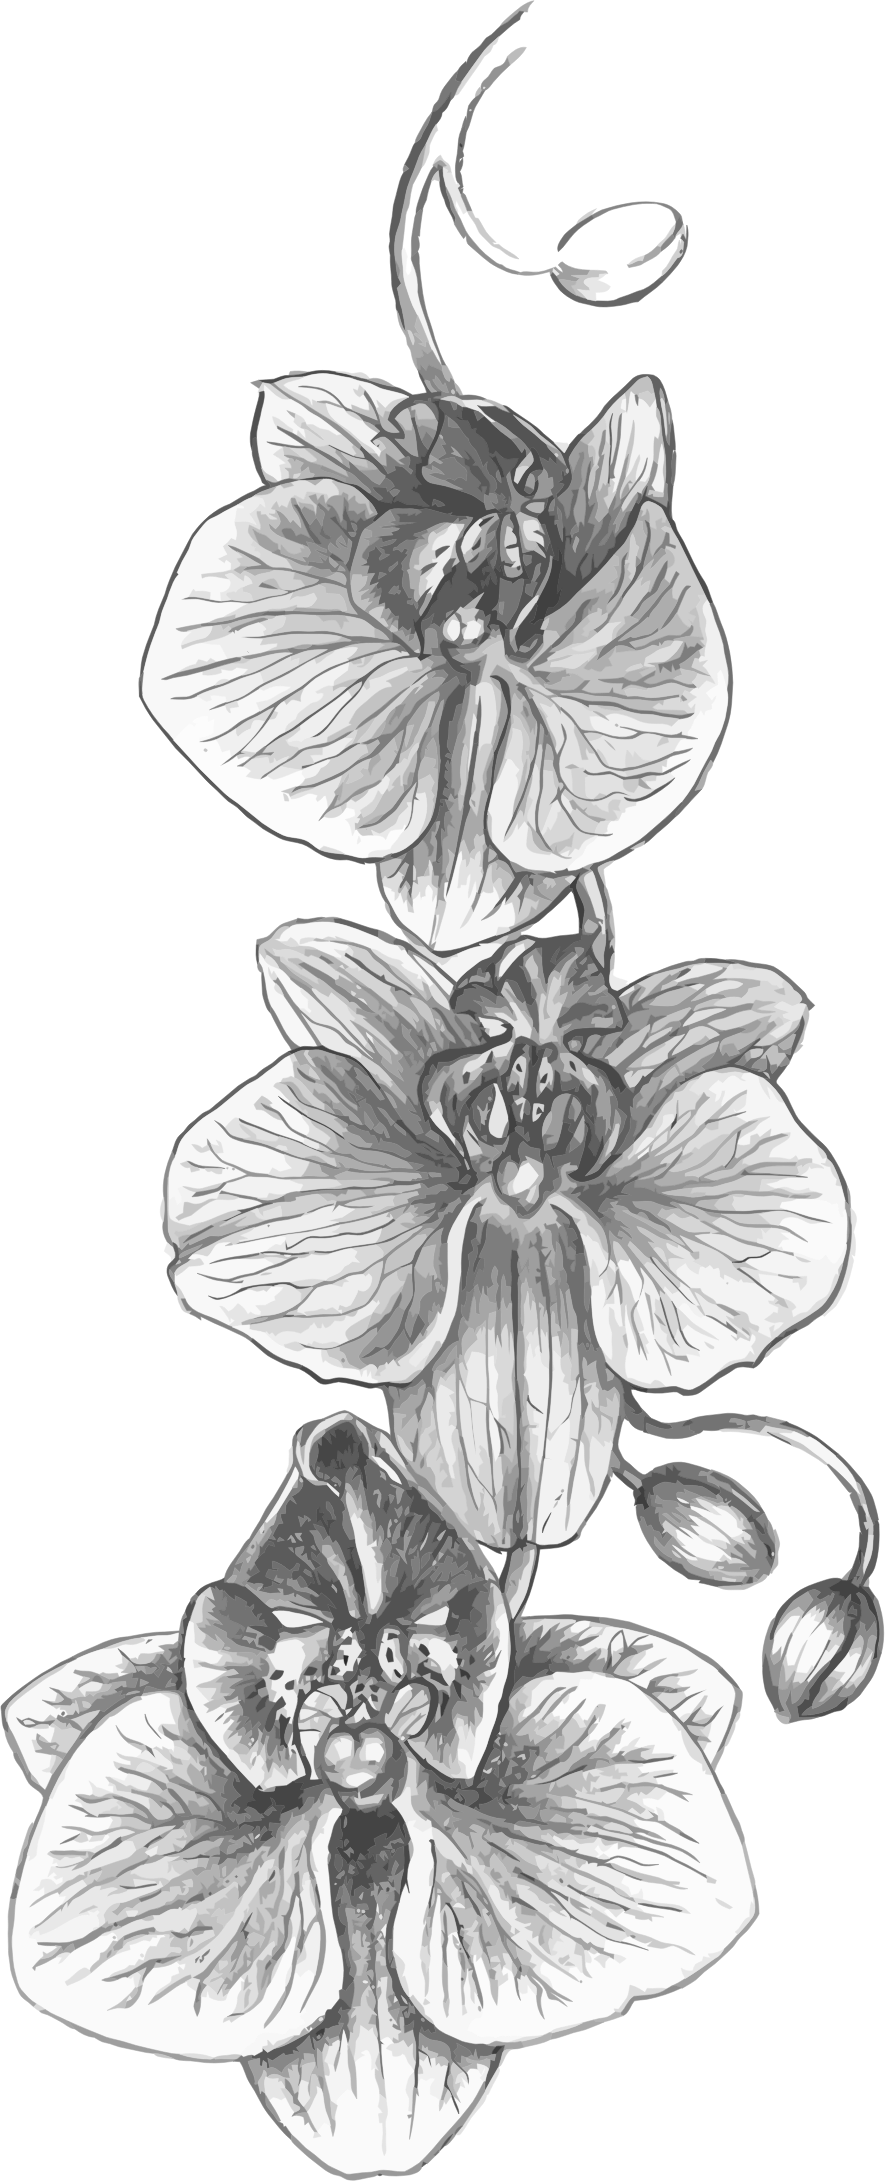 Clipart orchid big image. Flower sketch png